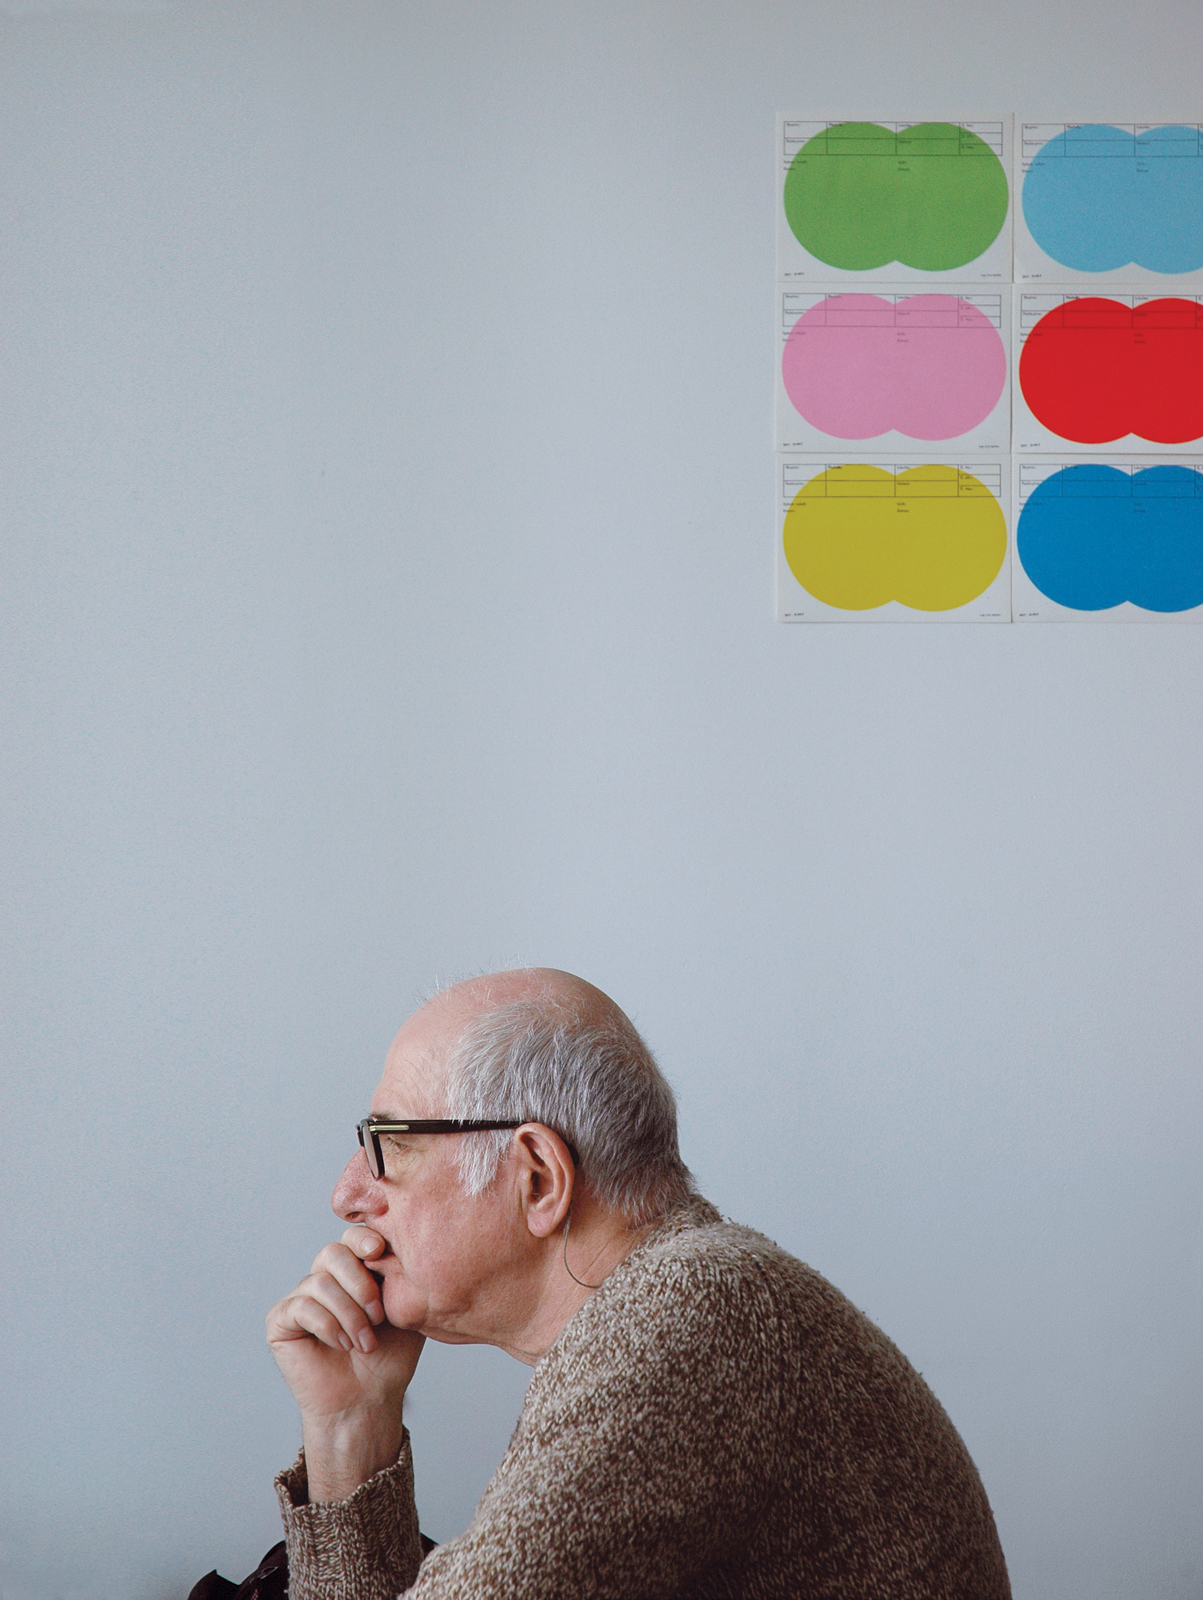 graphic designer Karel Martens portrait